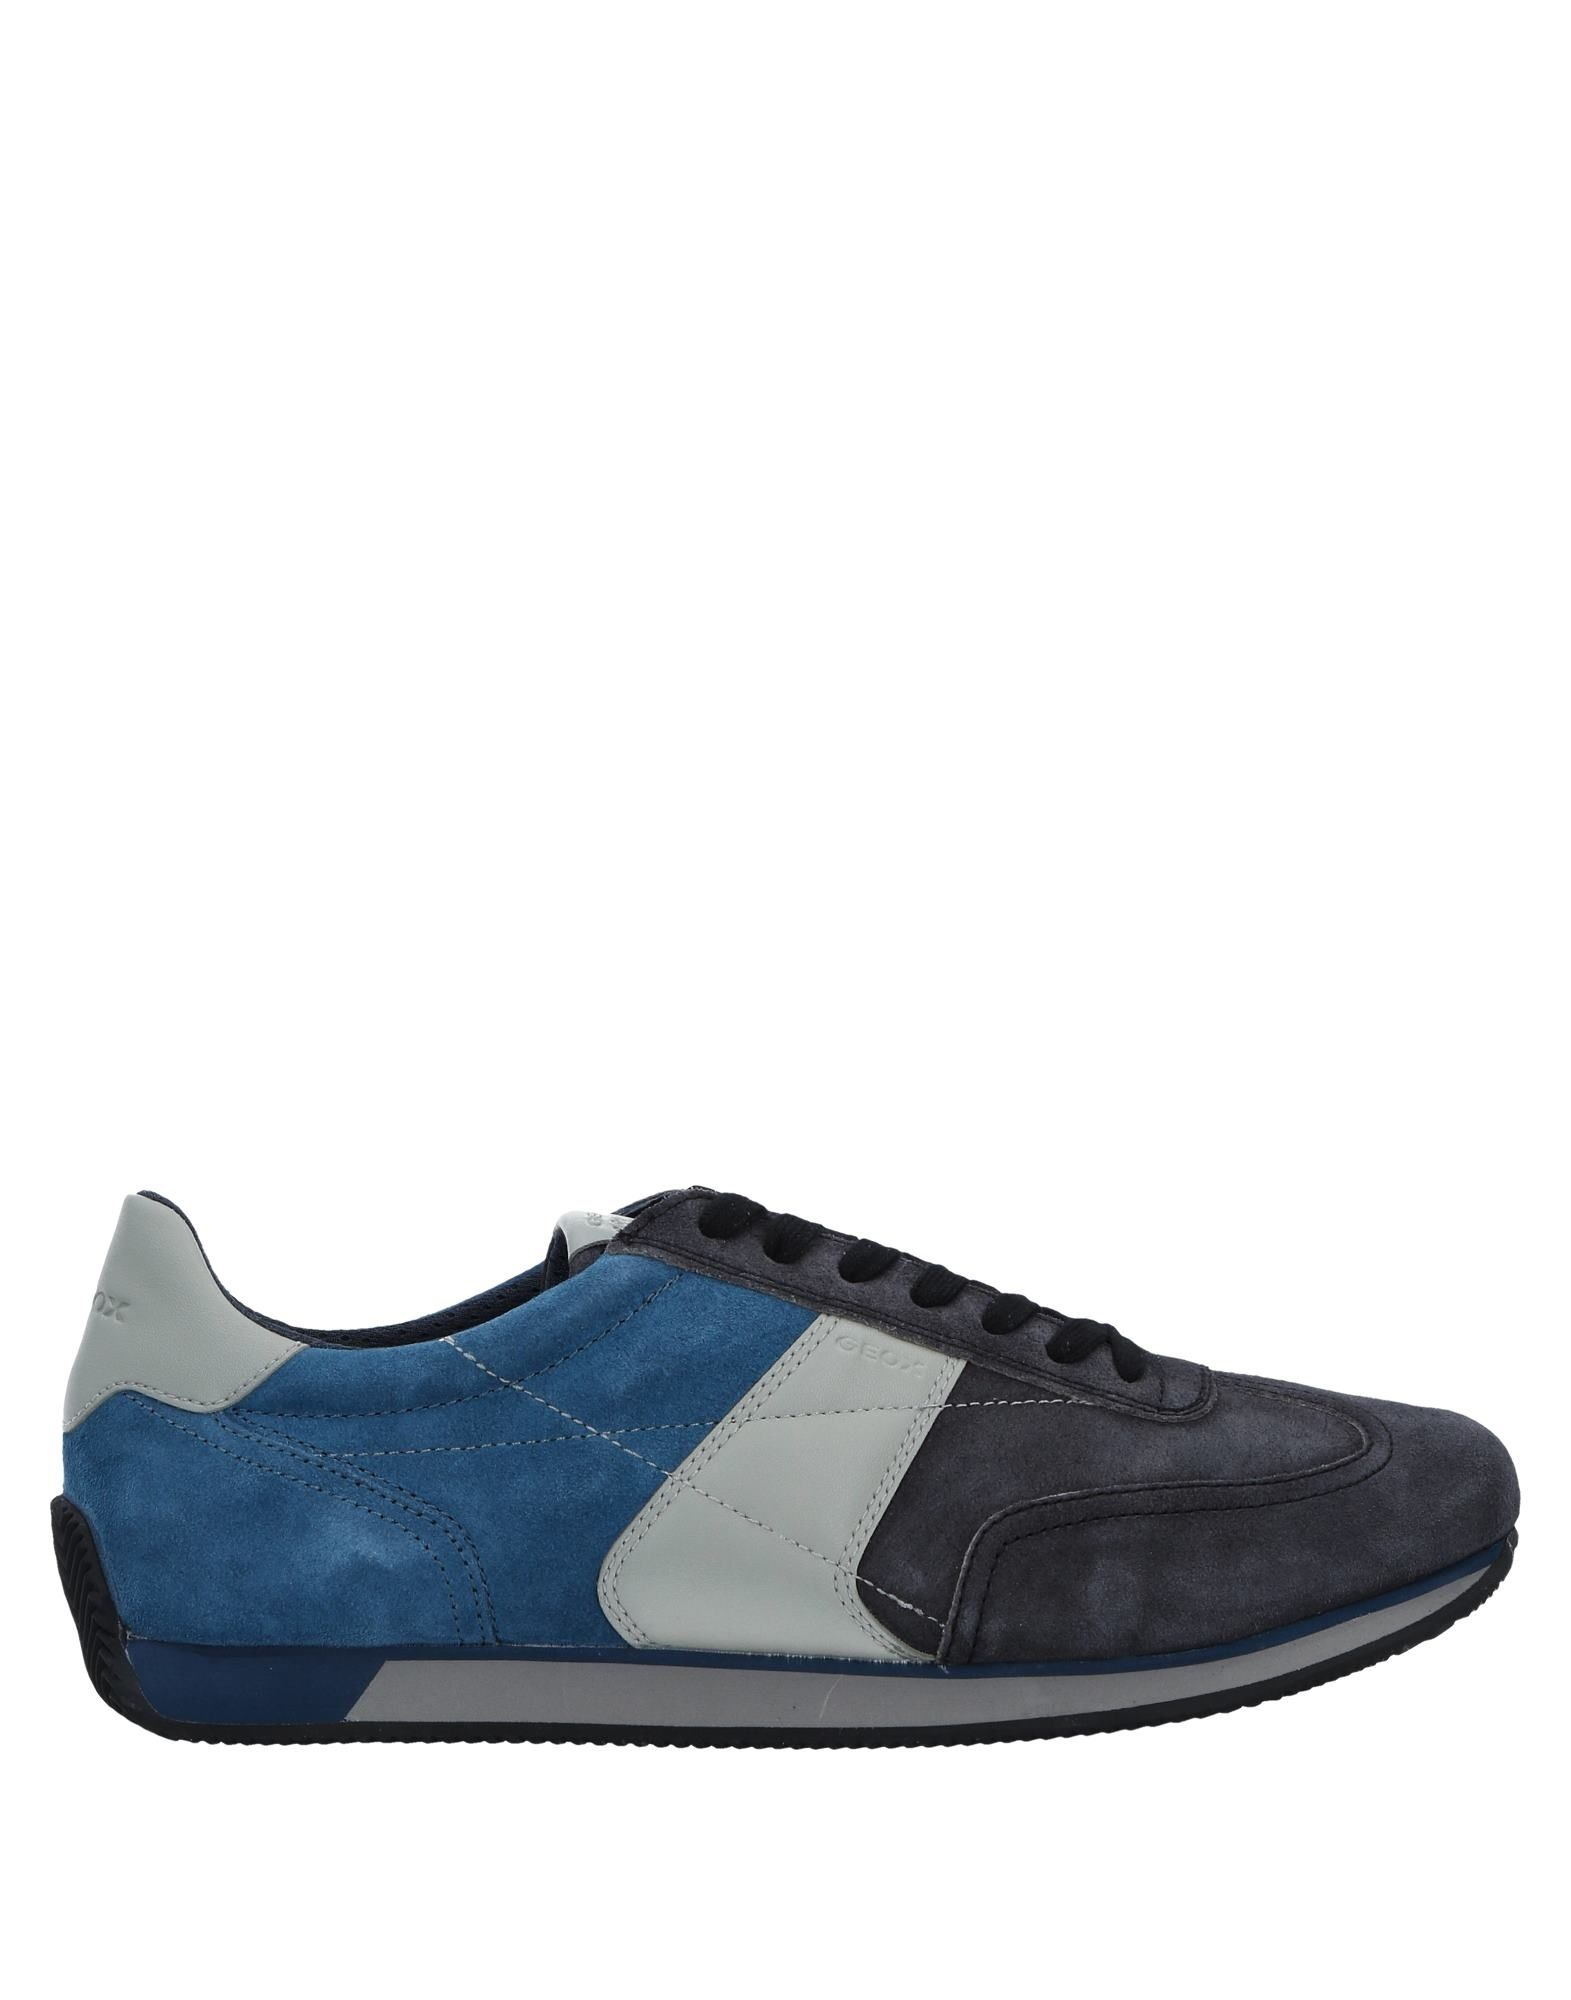 Geox Sneakers United - Men Geox Sneakers online on  United Sneakers Kingdom - 11540988QB 1233c4